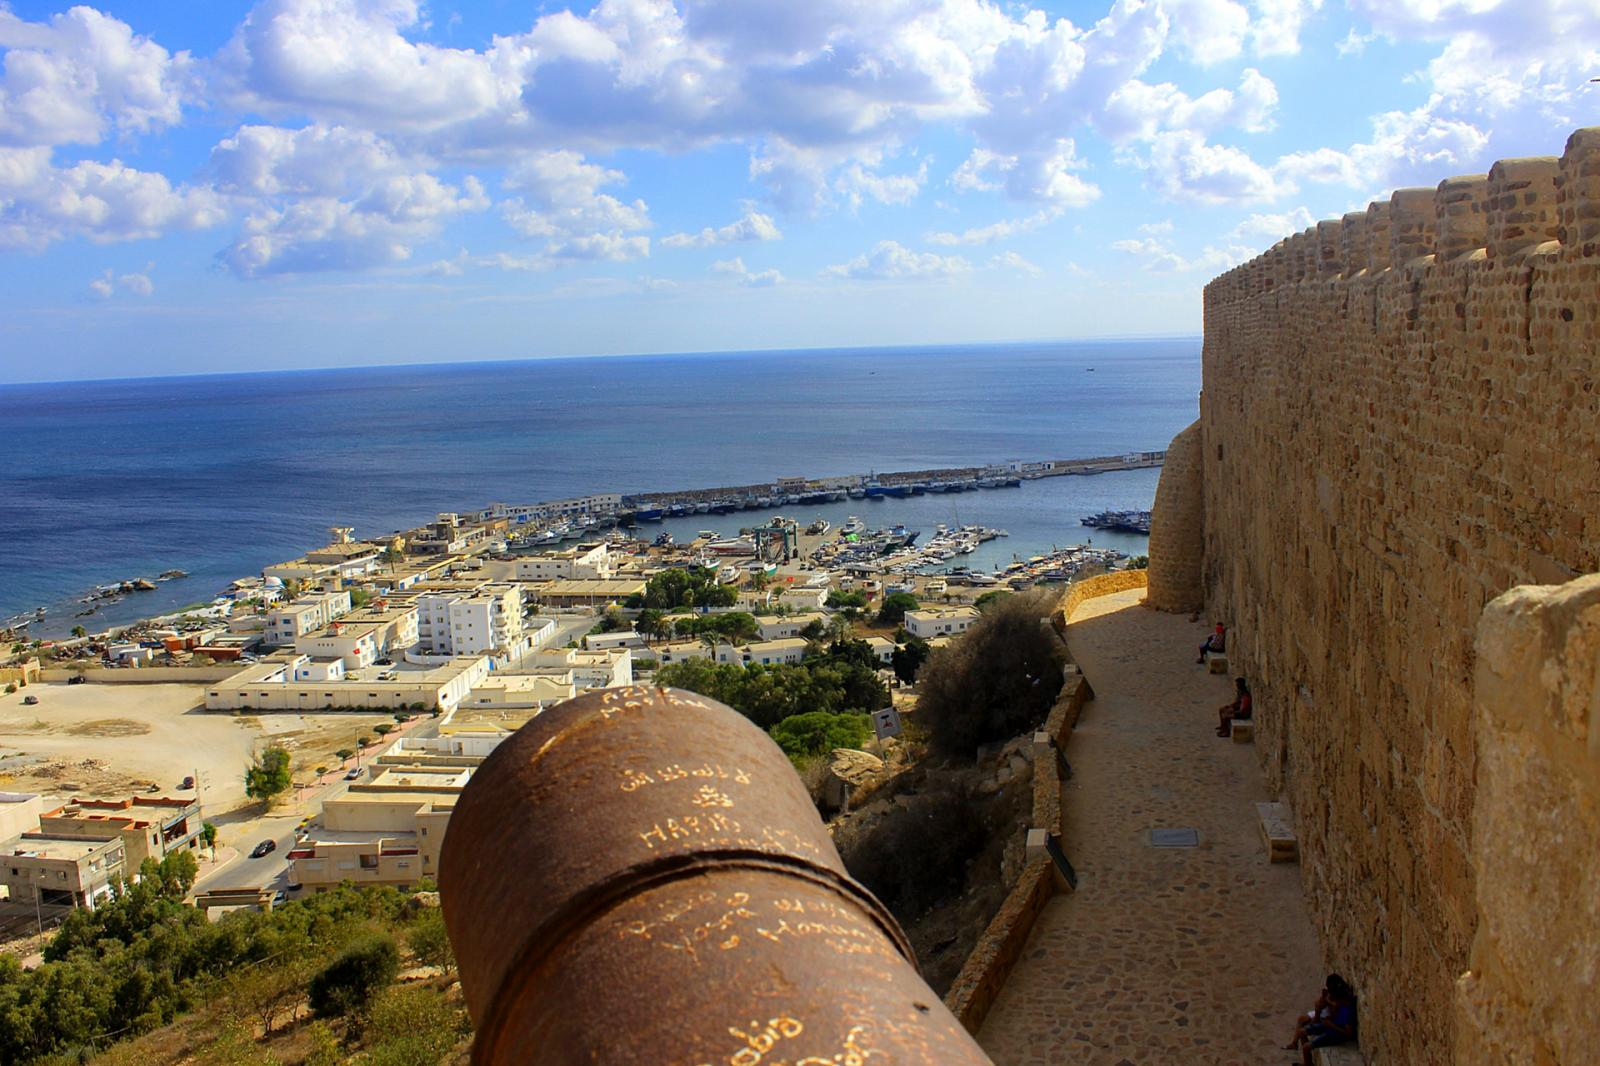 The port of Kelibia as seen from the town's byzantine fortress. (Credit: Sami Mlouhi (CC BY-SA 2.0))